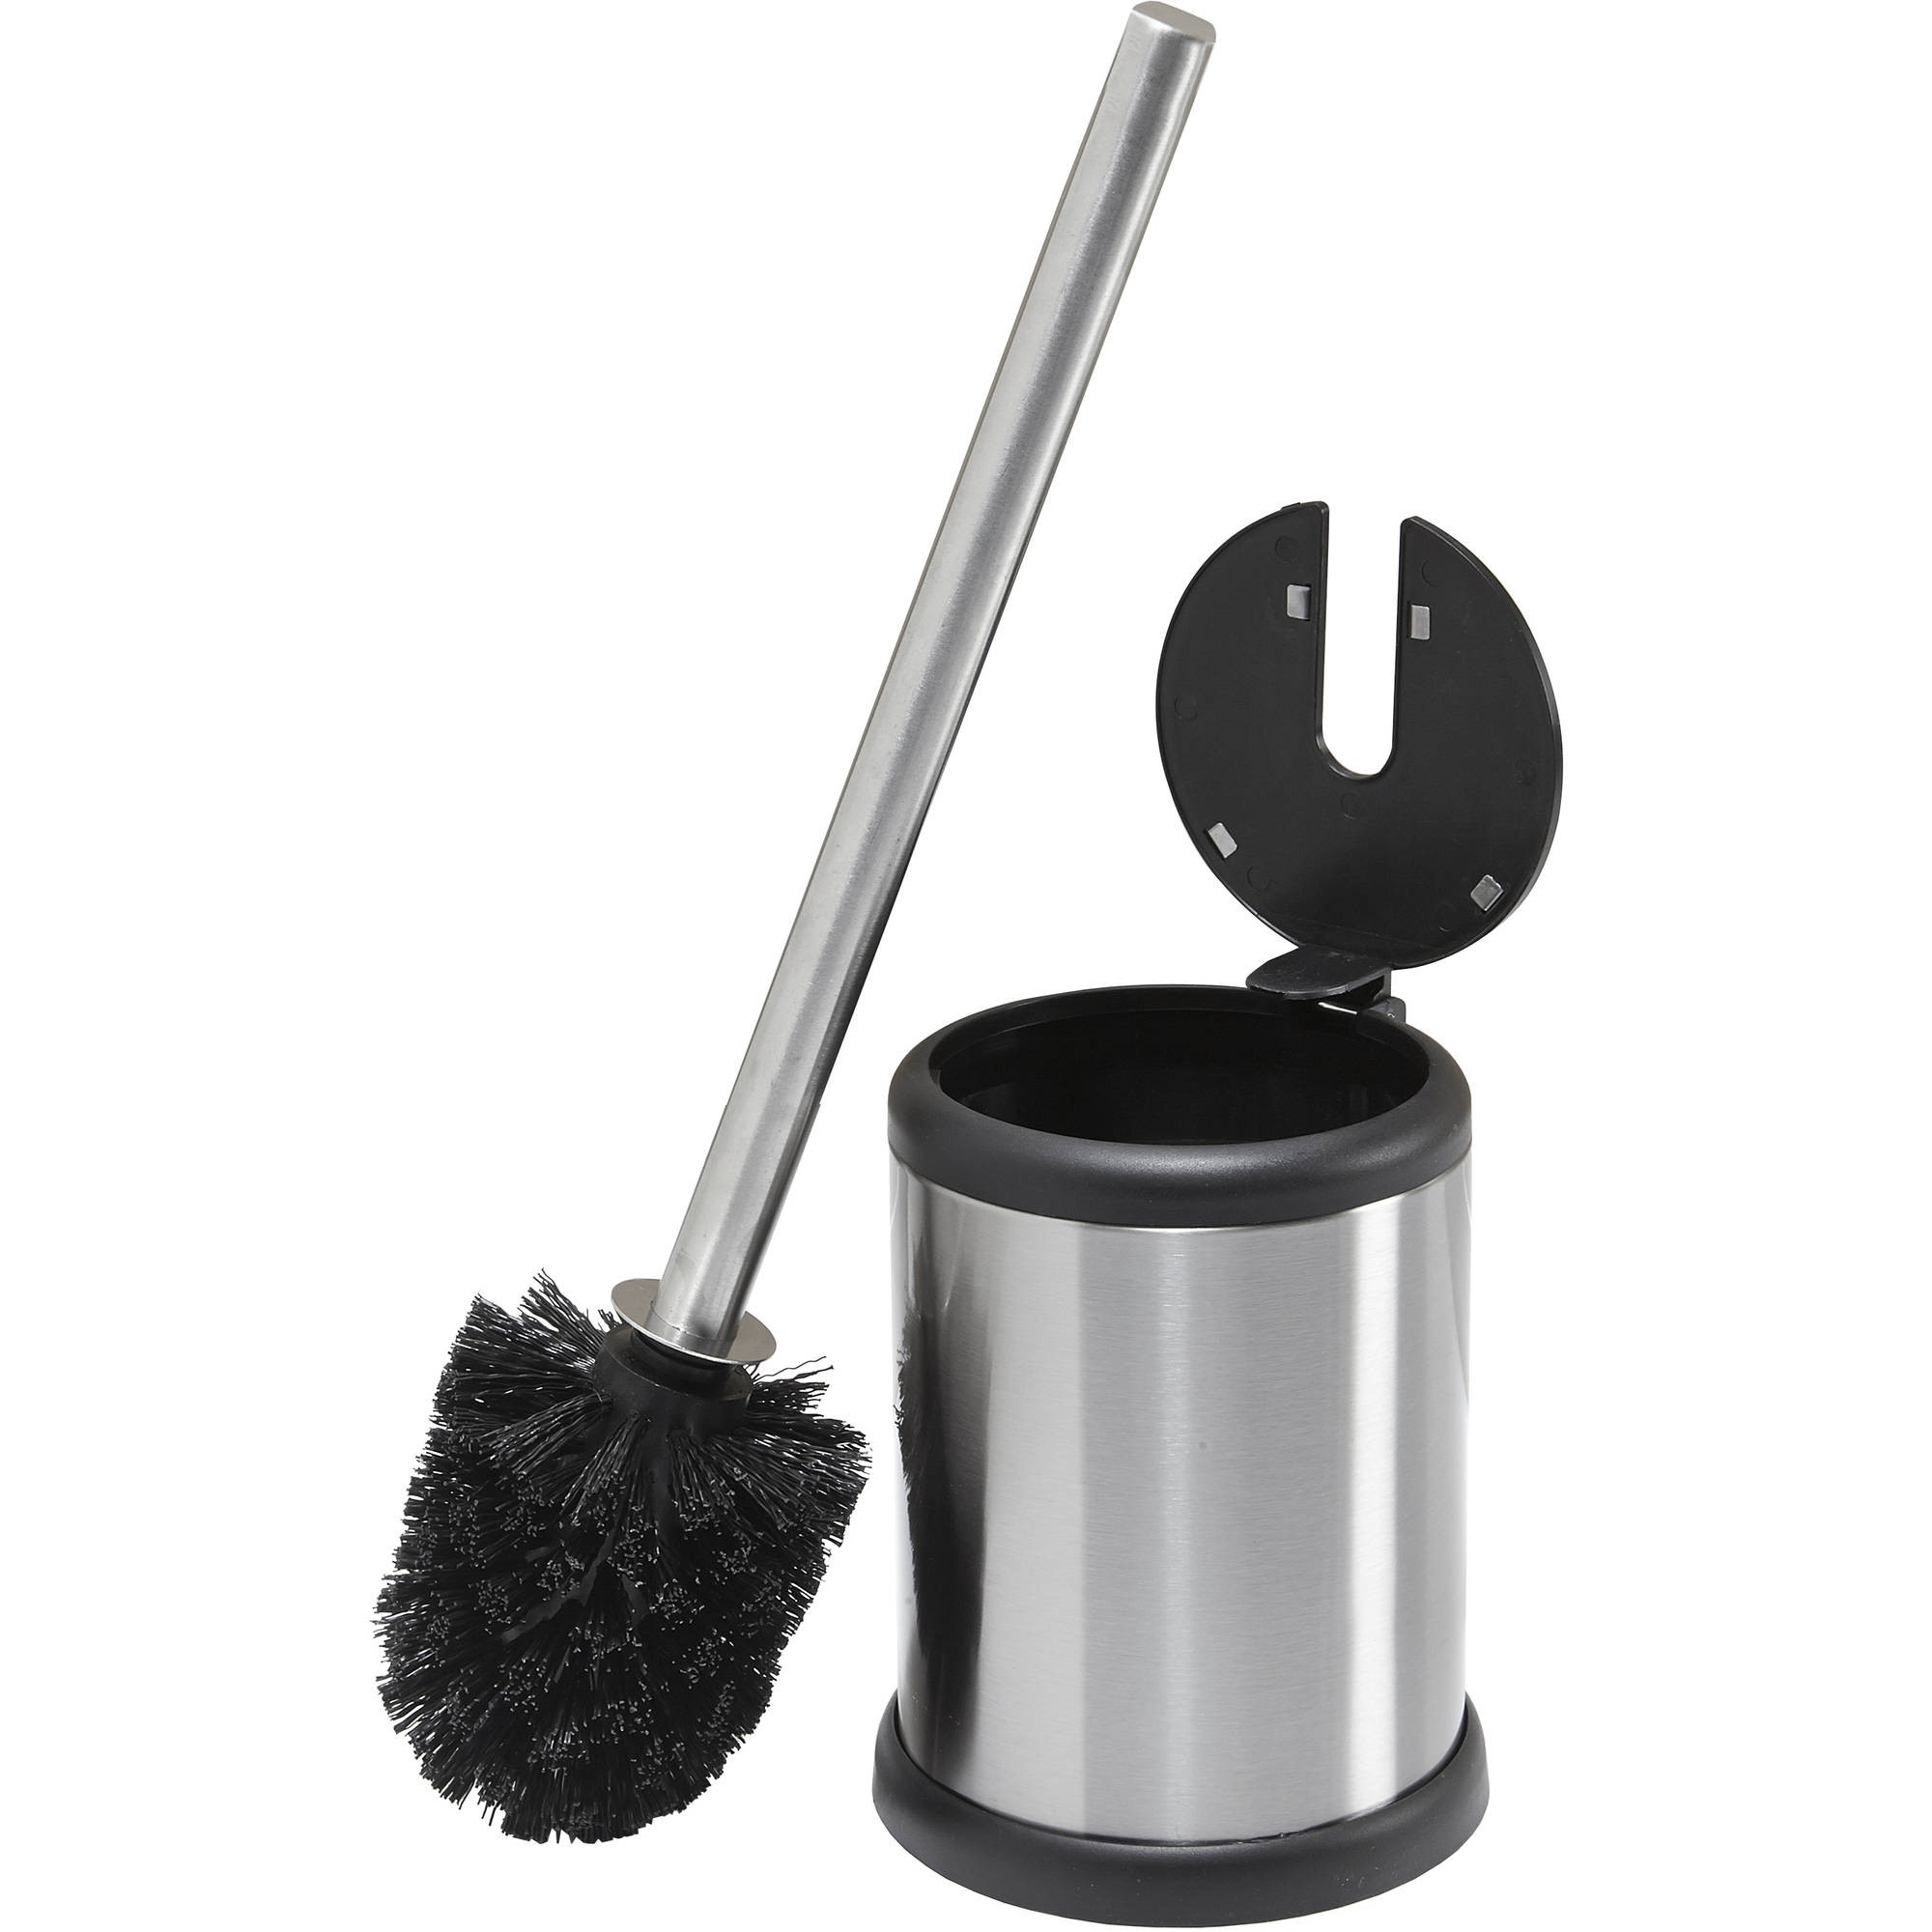 Bath Bliss Stainless Toilet Brush with Closing Lid by Kennedy International, INC.